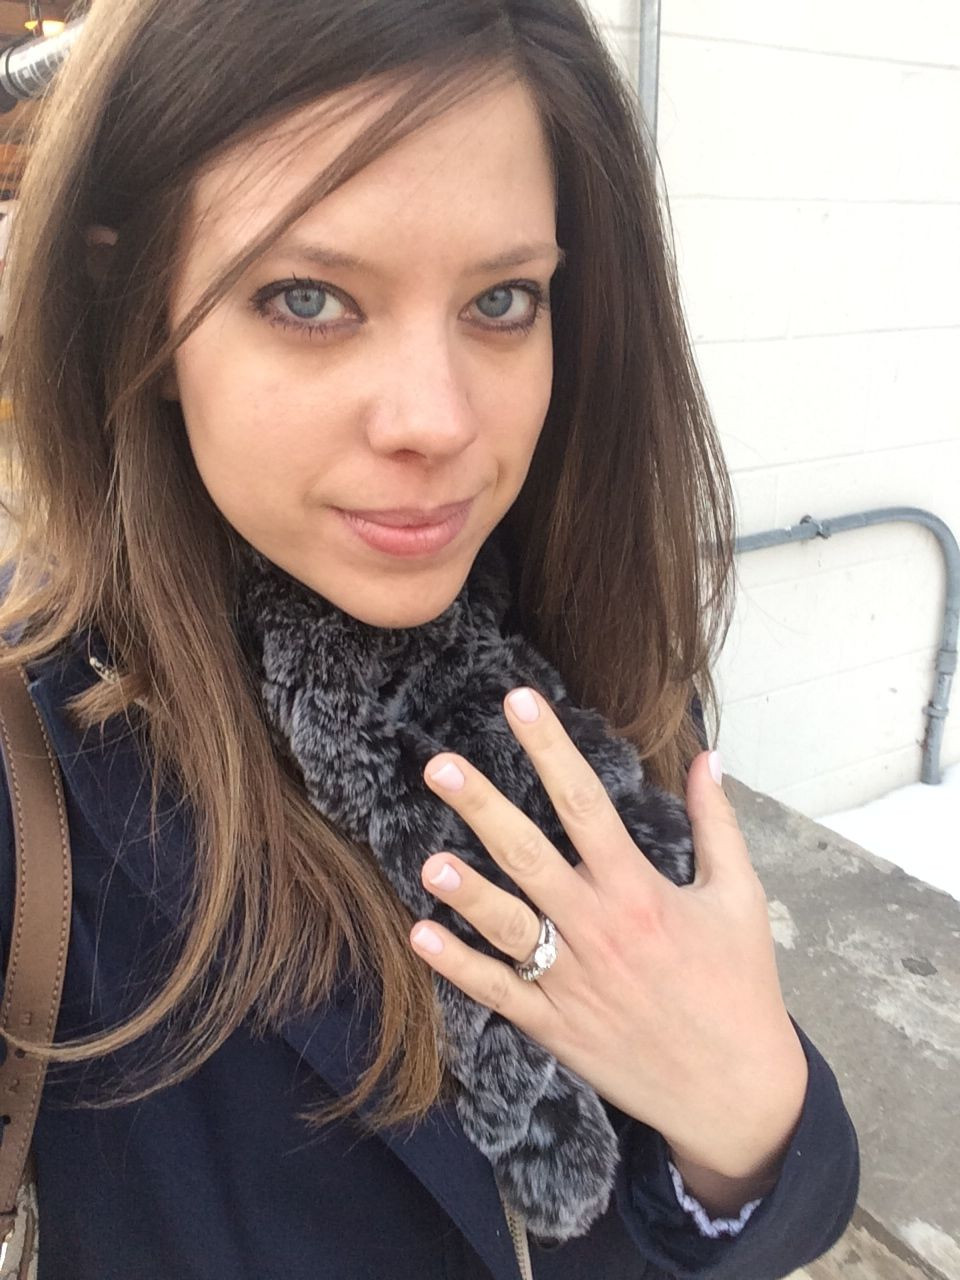 mommy-needs-a-manicure-bride-blog-our-life-in-rose-gold-chic-the-fuck-up